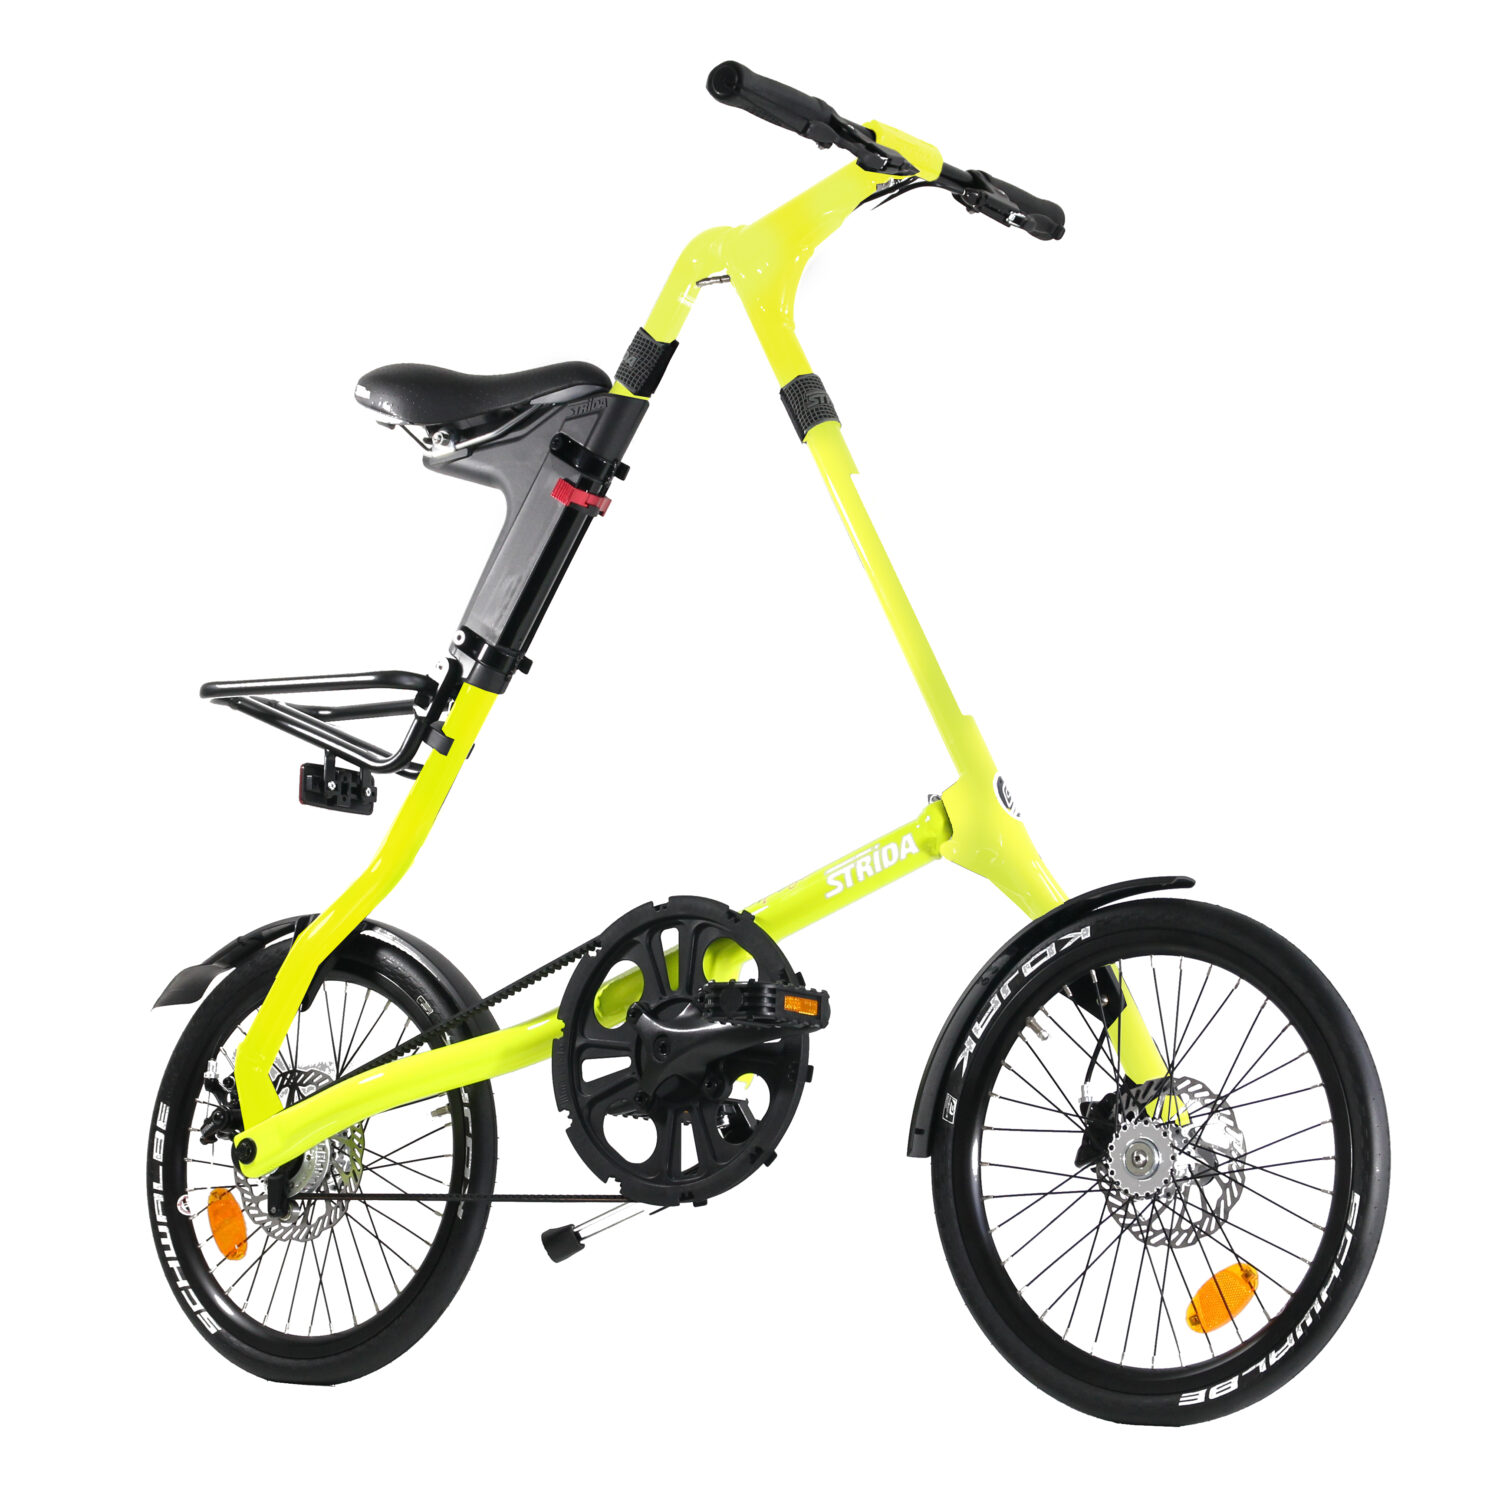 STRIDA SX Neon Venus - 18 inch - bike - Buy foldable bikes - Buy folding bicycle - Buy folding bike - Buy folding bikes - buying - collapsible bike - Design bike - Design folding bike - foldable bike - Folding bicycle - Folding bike - Folding bike shop - Folding bikes - for sale - Lightweight - new - shop - Single speed - strida - Strida design folding bike - sx - Triangular - Triangular folding bike - Triangular shaped - unique folding bike